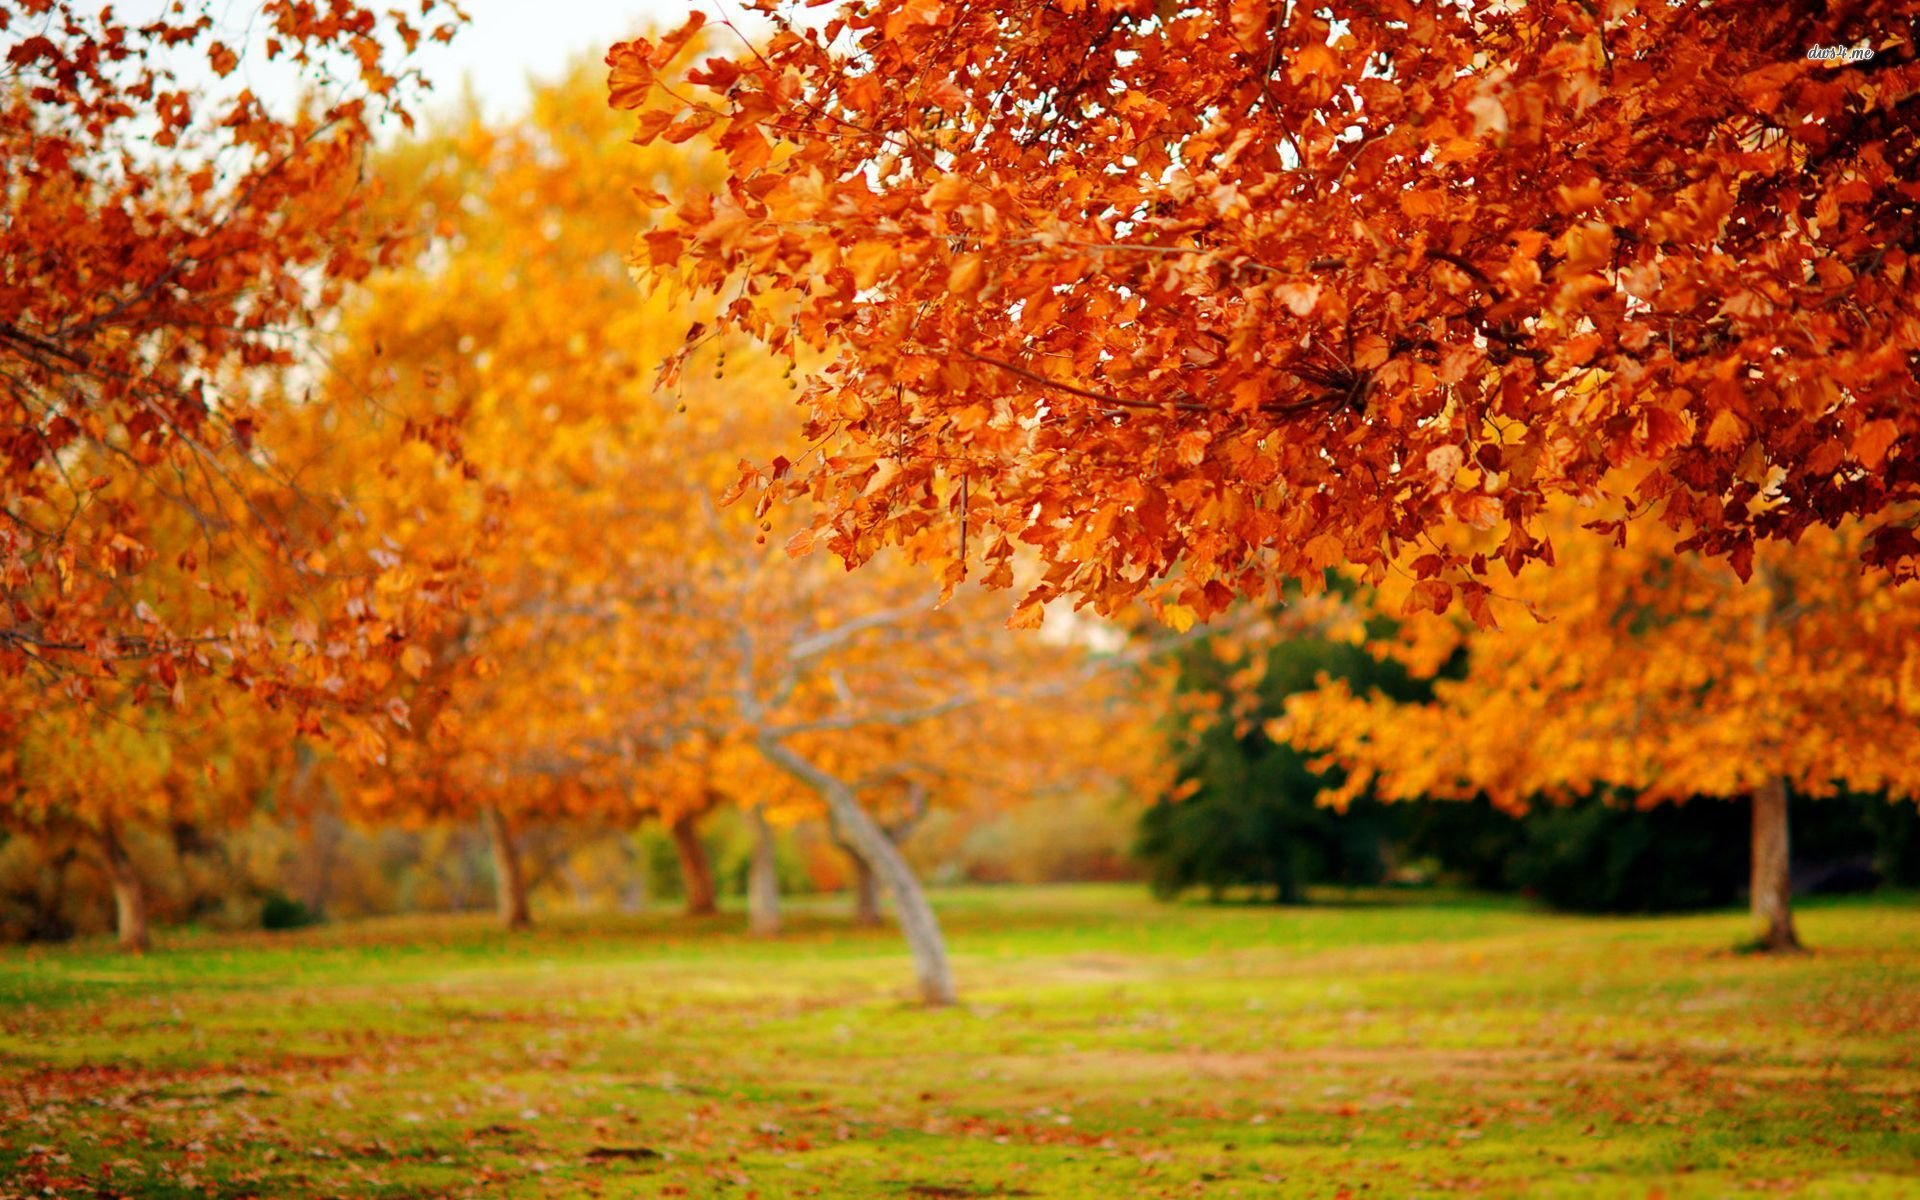 Free Desktop Wallpaper Fall Foliage Autum Trees Nature Landscape Leaf Leaves Wallpaper